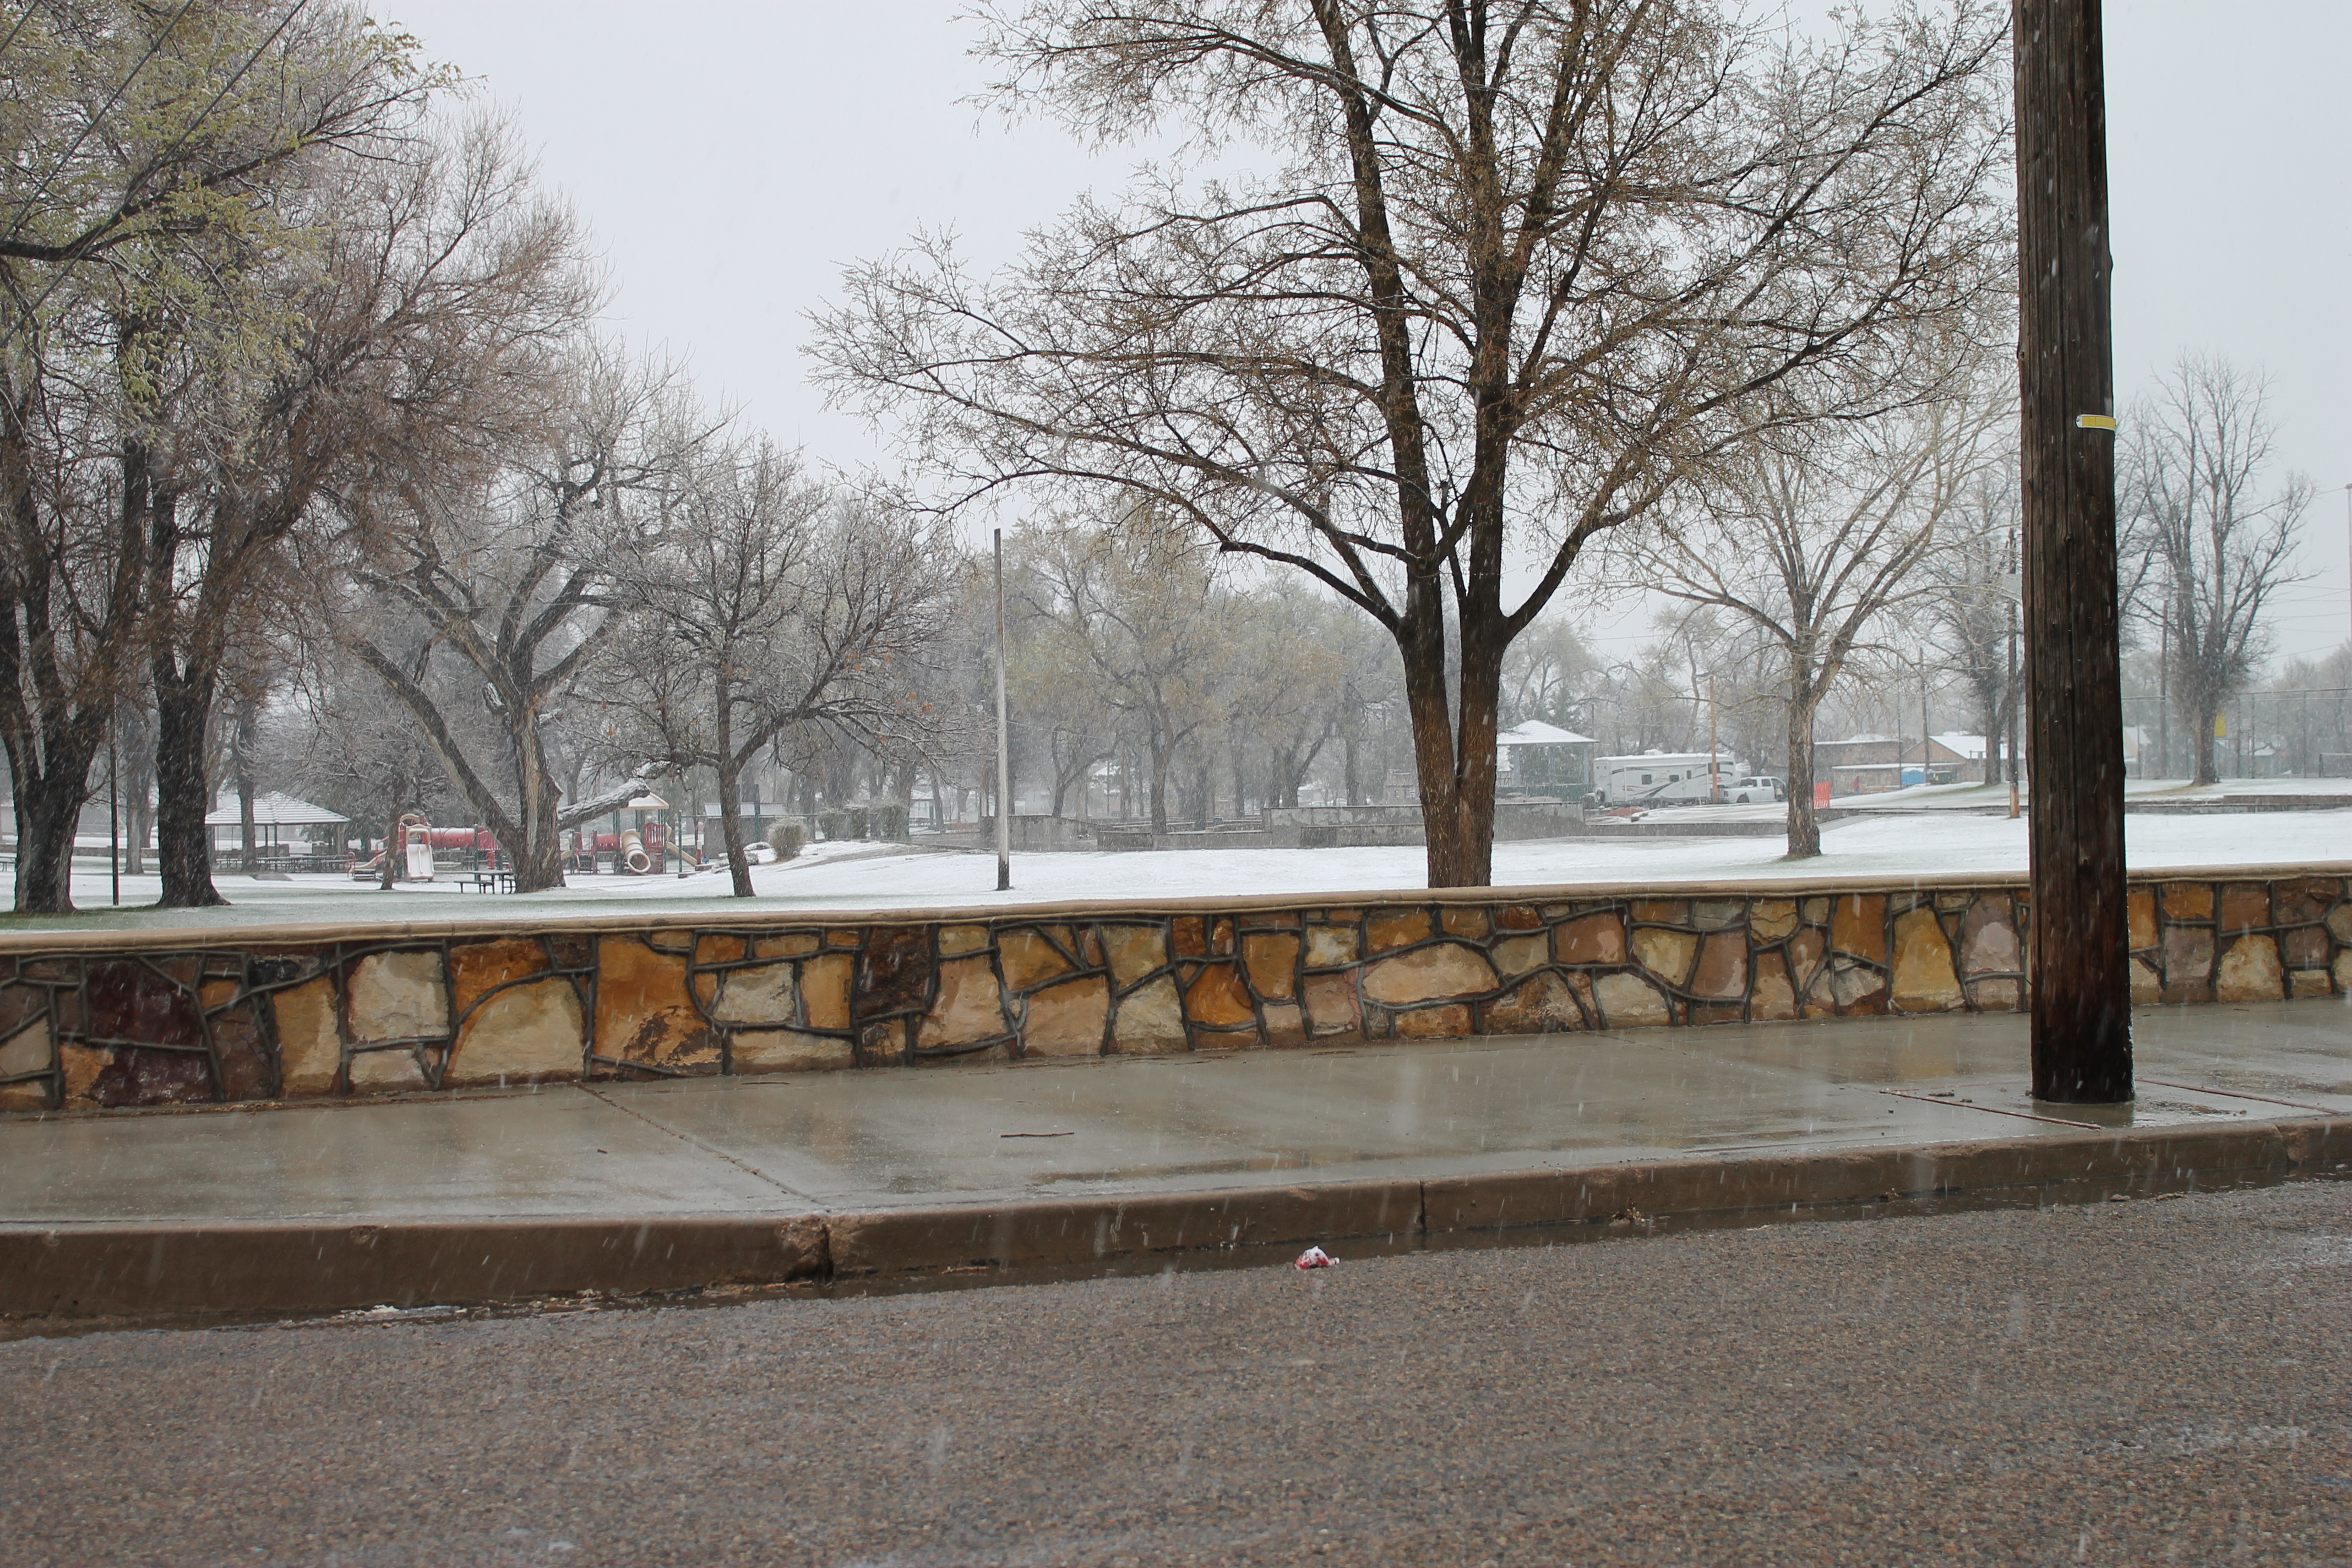 A photo of La Junta City Park Wall, a stone wall a couple of feet high set back from the road. Snow is on the ground.